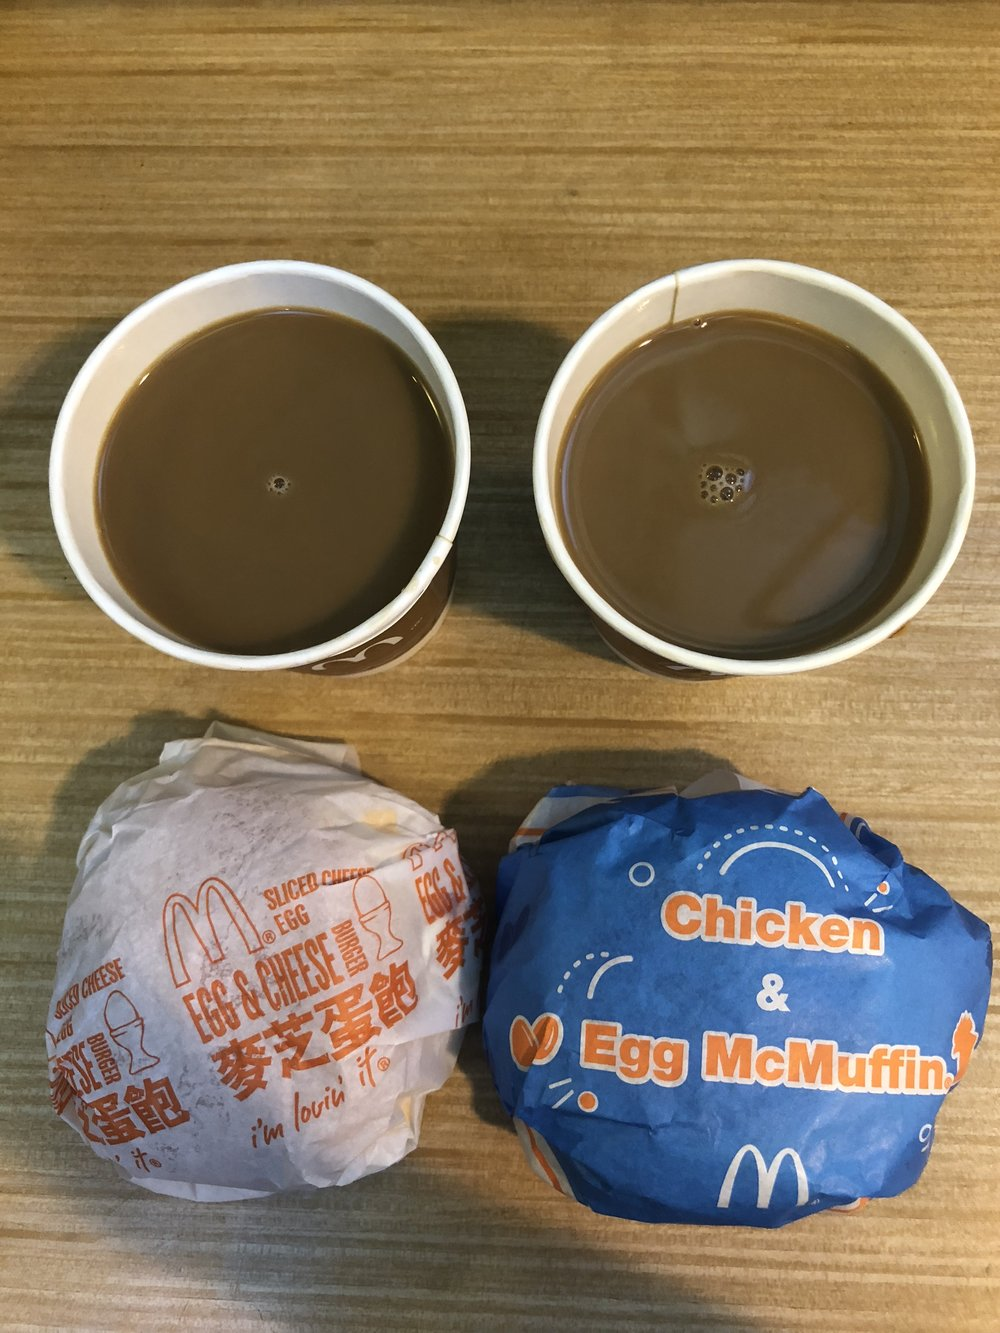 Egg & Cheese Hamburger + Chicken and Egg McMuffin